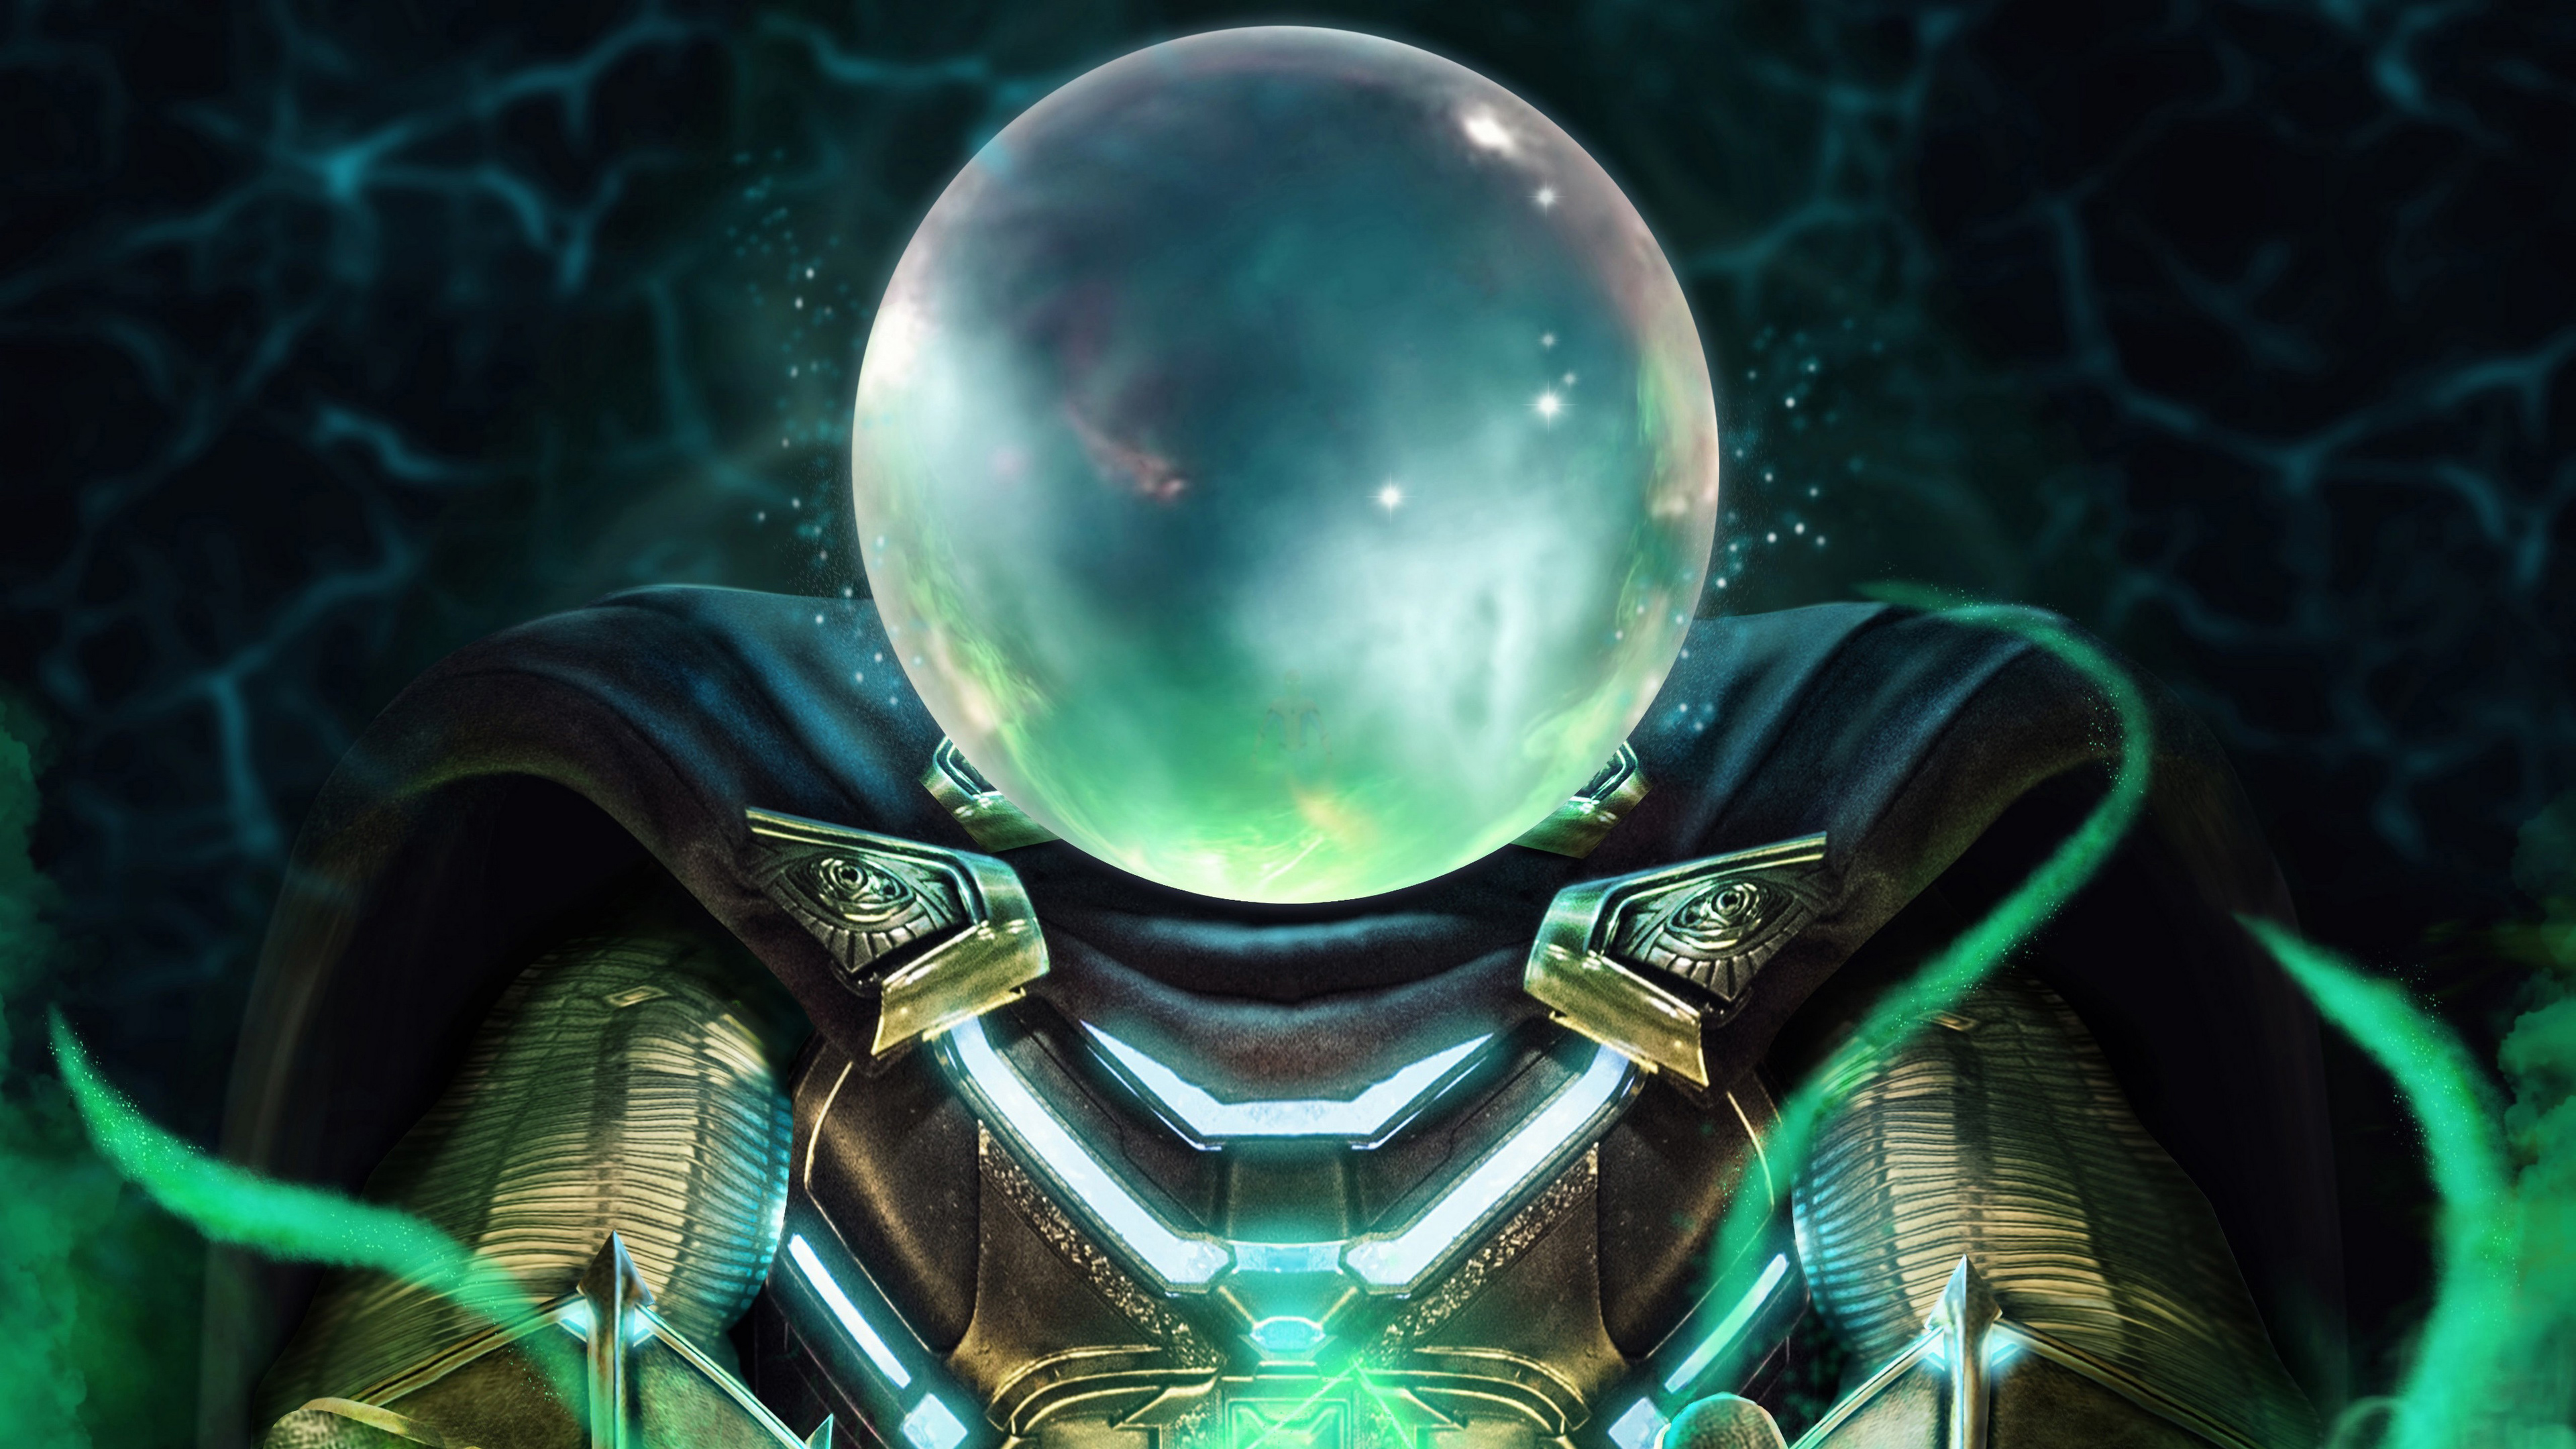 mysterio artwork 1565053054 - Mysterio Artwork - superheroes wallpapers, mysterio wallpapers, hd-wallpapers, artwork wallpapers, 4k-wallpapers